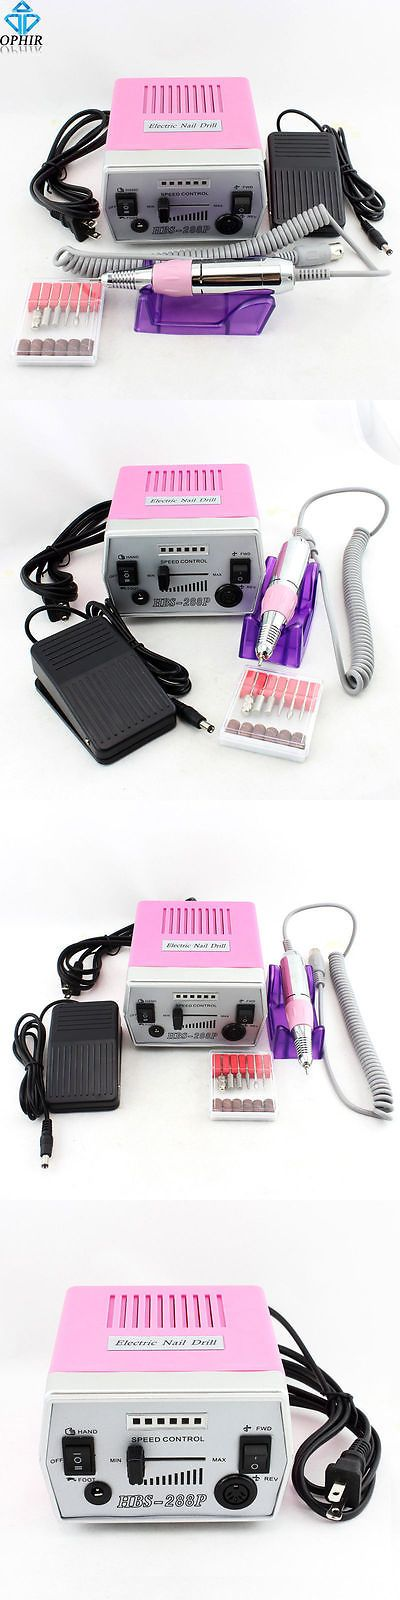 Manicure Pedicure Tools and Kits: Electric Nail Drill Machine 30000Rpm Nail File Bits Nail Tool 220V Uk/Eu Plug BUY IT NOW ONLY: $42.79